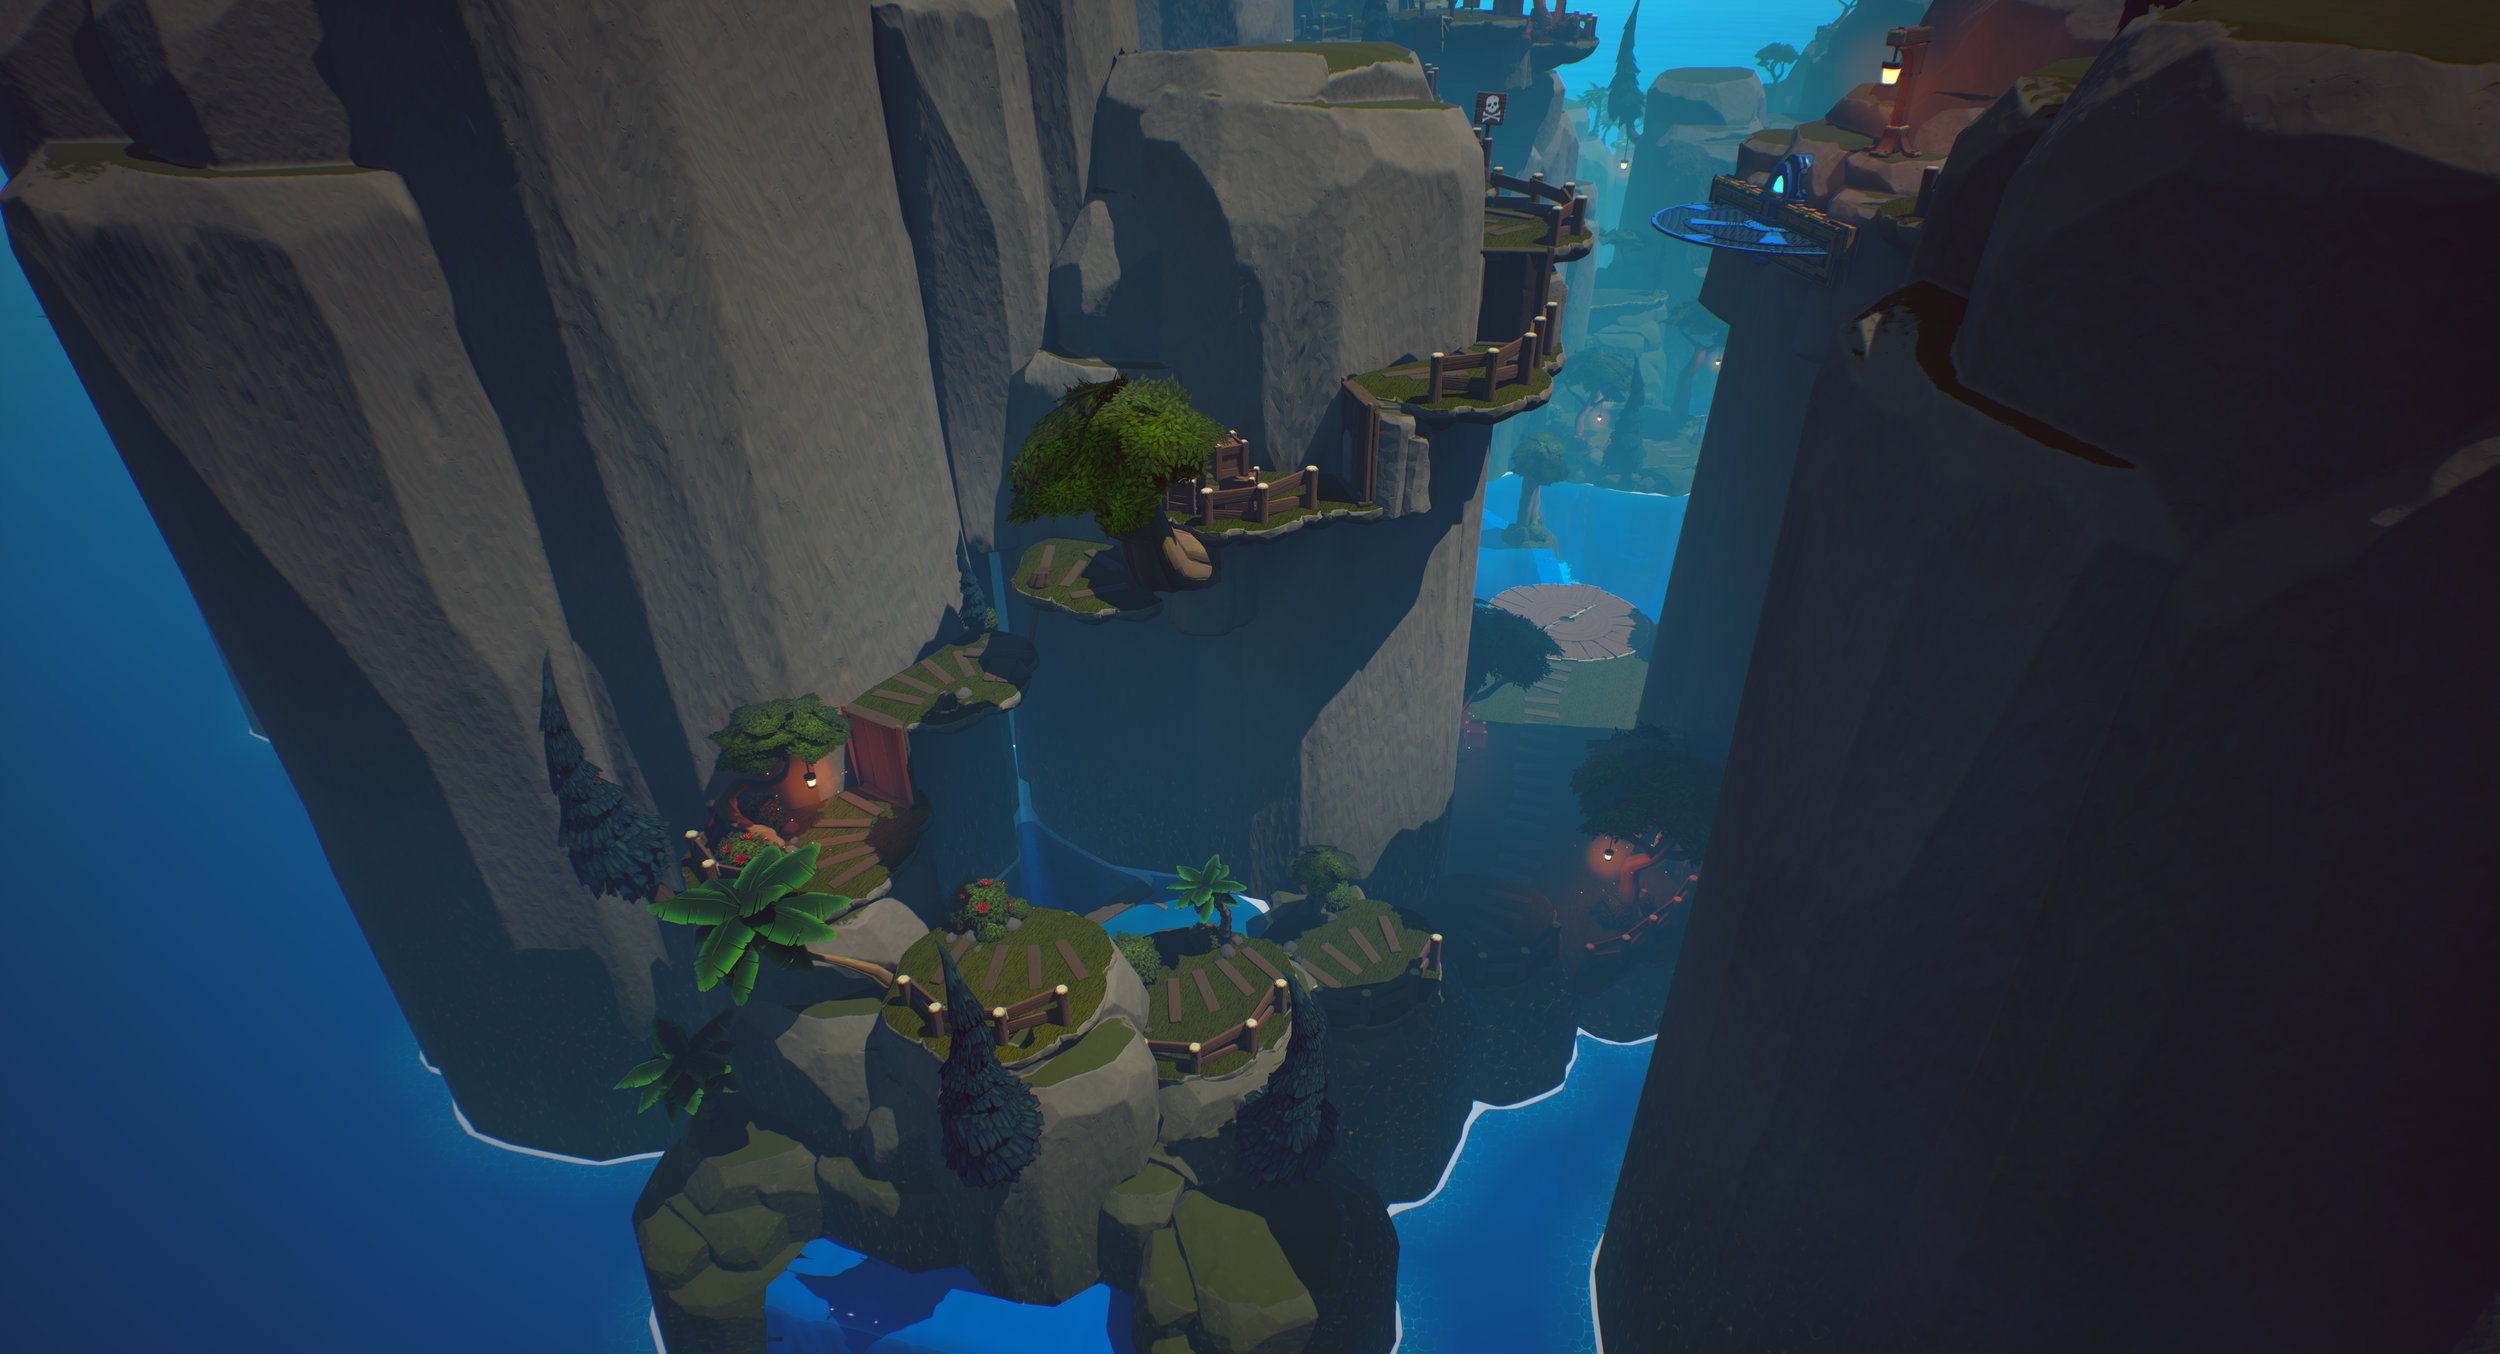 Figure 4: The last bit of platforming as the player gains some vertical ground before the final fight